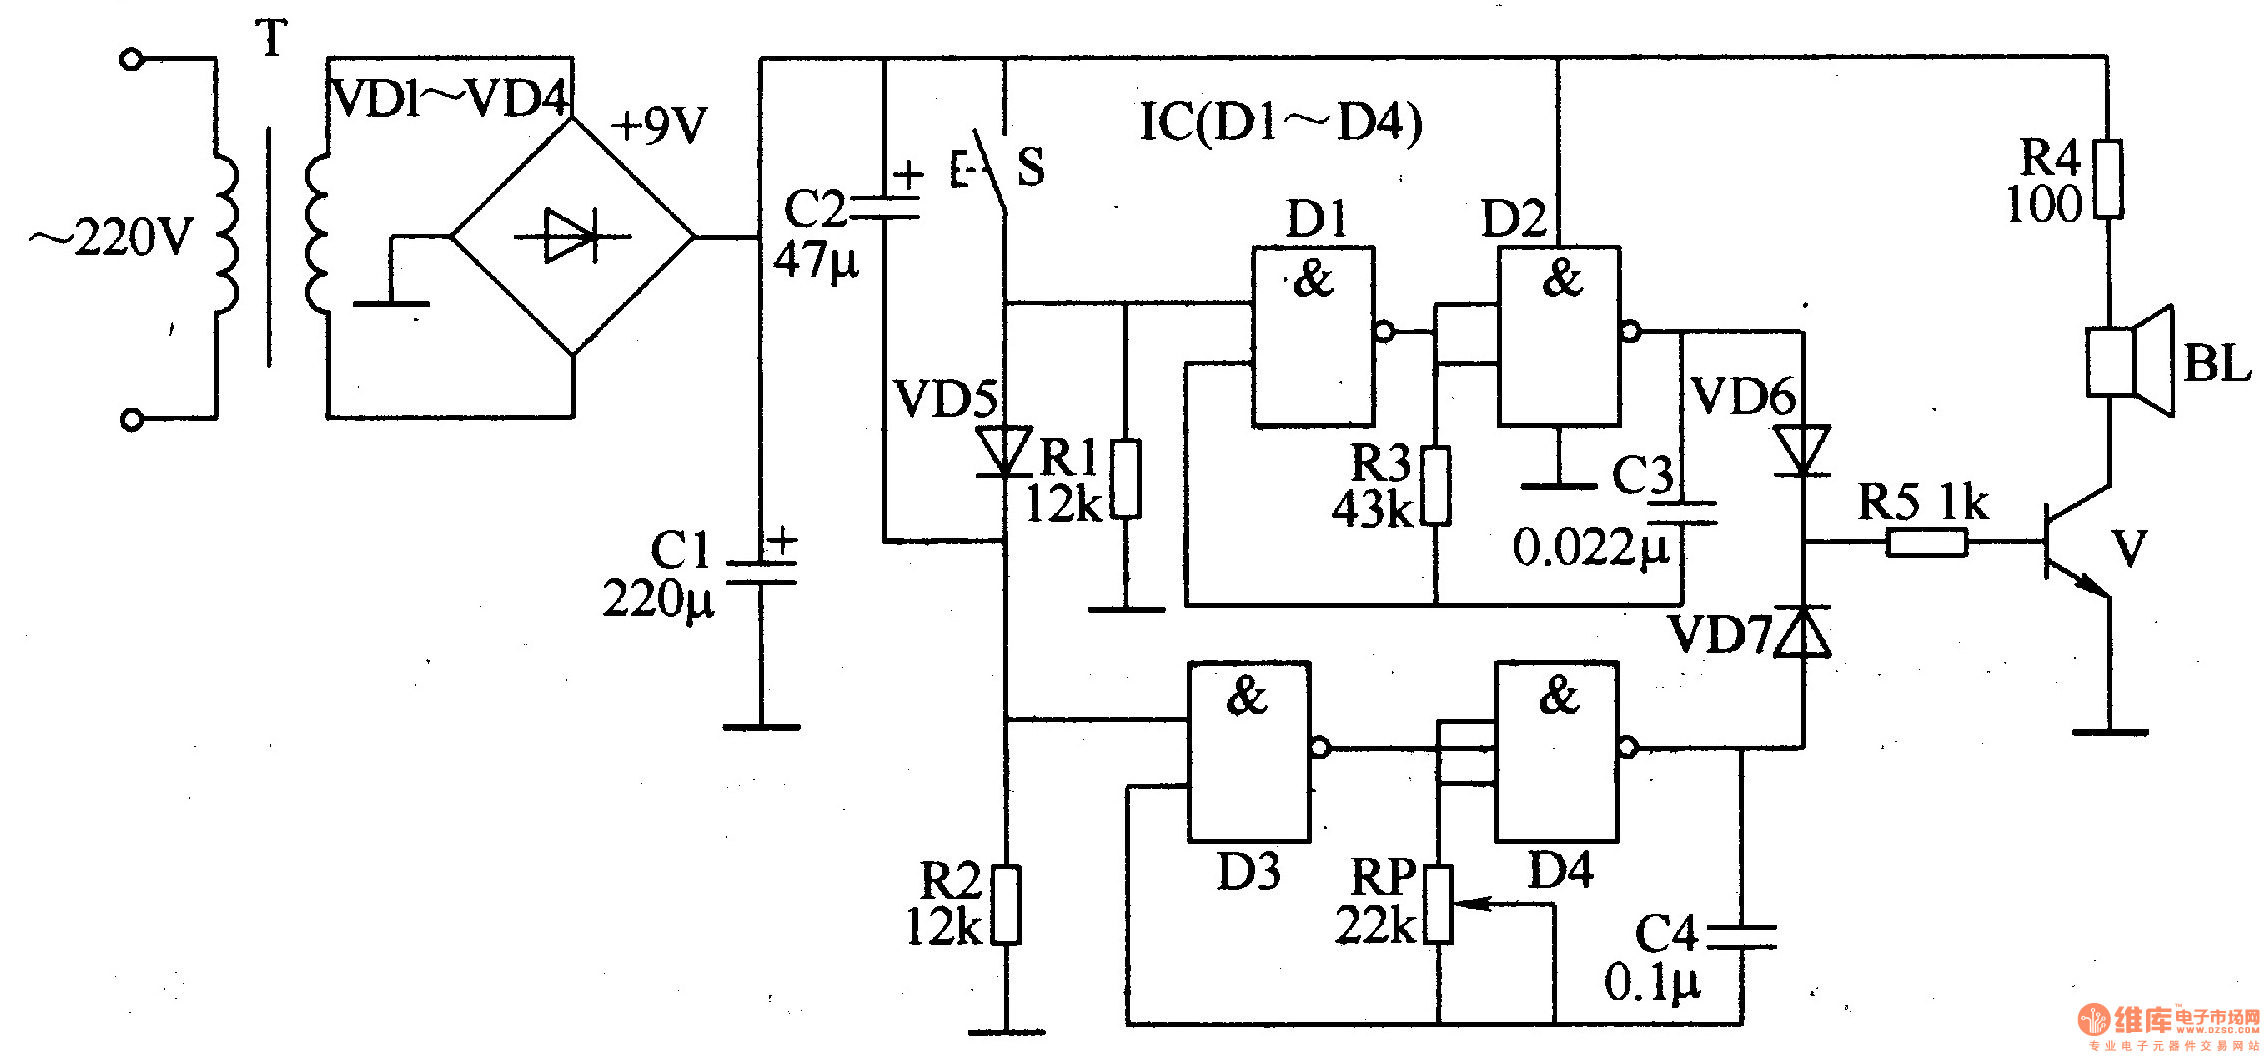 Ding Dong Electronic Doorbell Electrical Equipment Circuit Wwwseekiccom Circuitdiagram Powersupplycircuit Negativevoltage